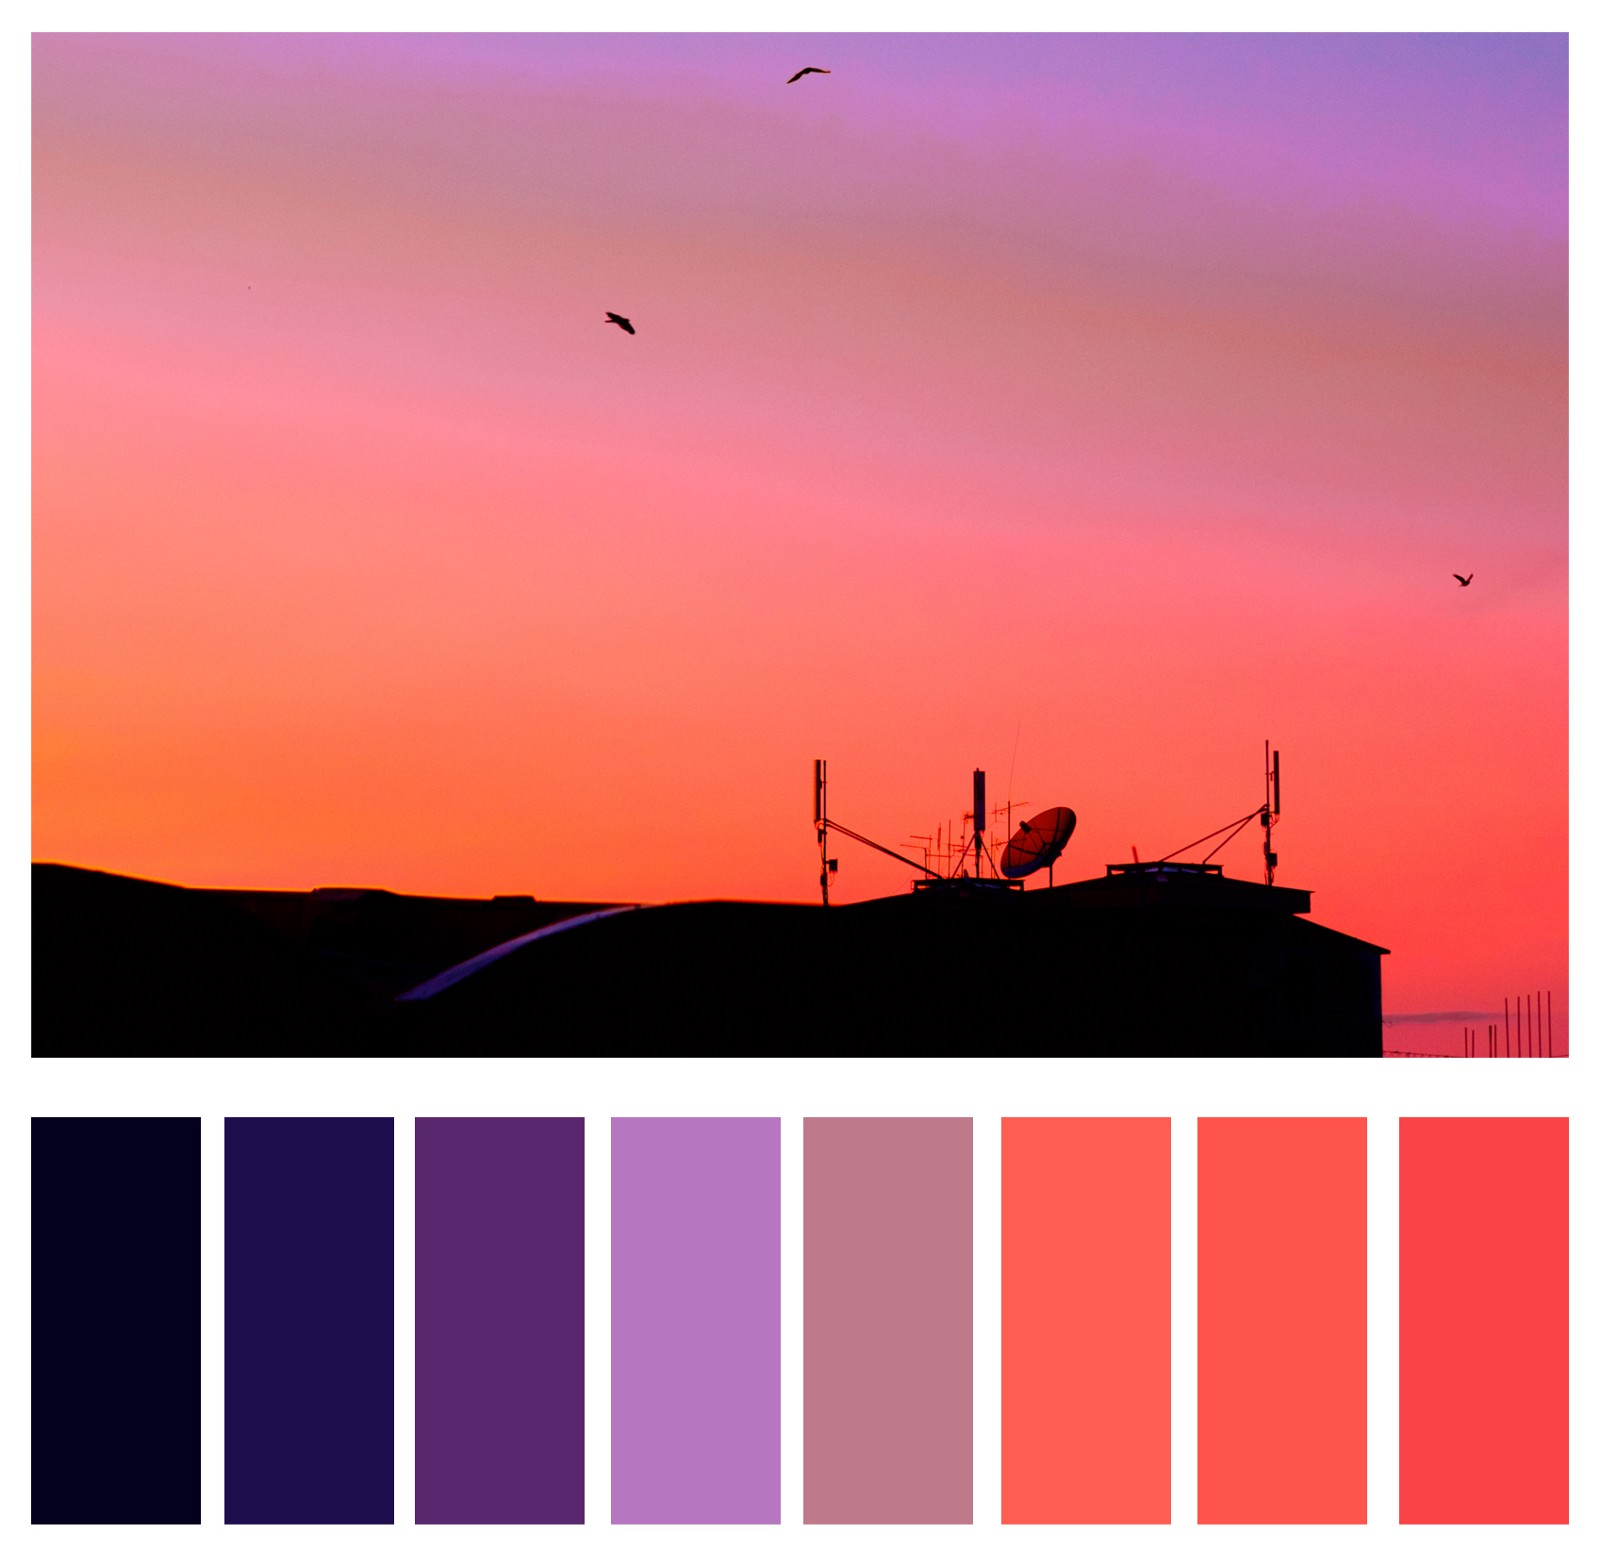 Figure 1c Tertiary Colors Are Often Used To Create Visual Interest And Make For Other Worldly Vibes